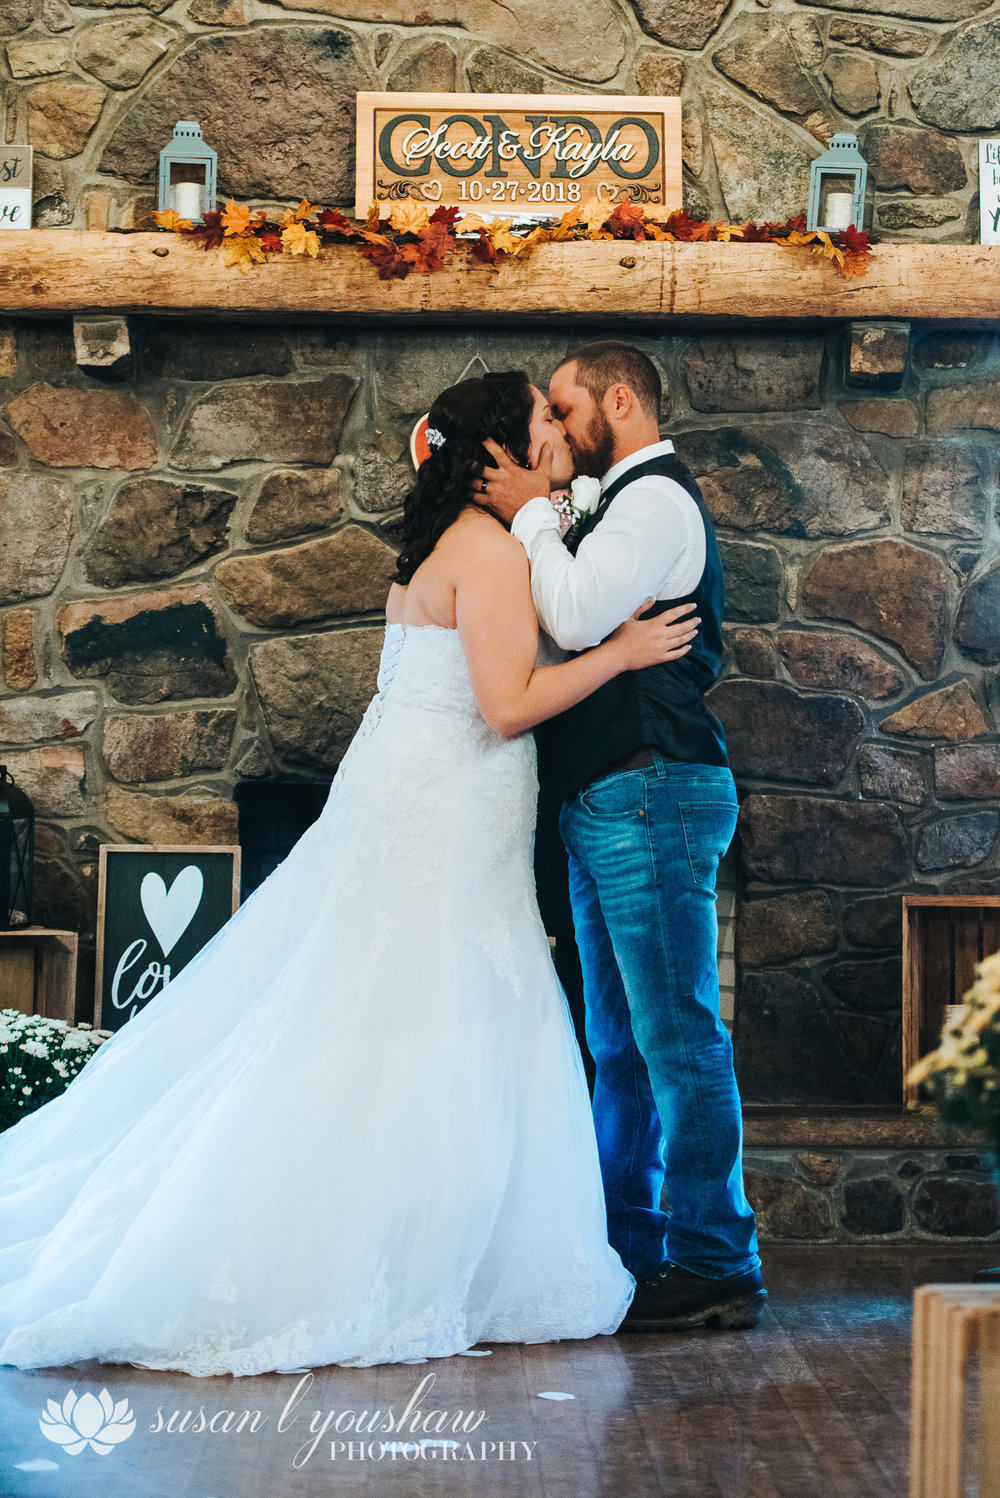 Blog Kayla and Scott 10-27-2018 SLY Photography LLC -74.jpg